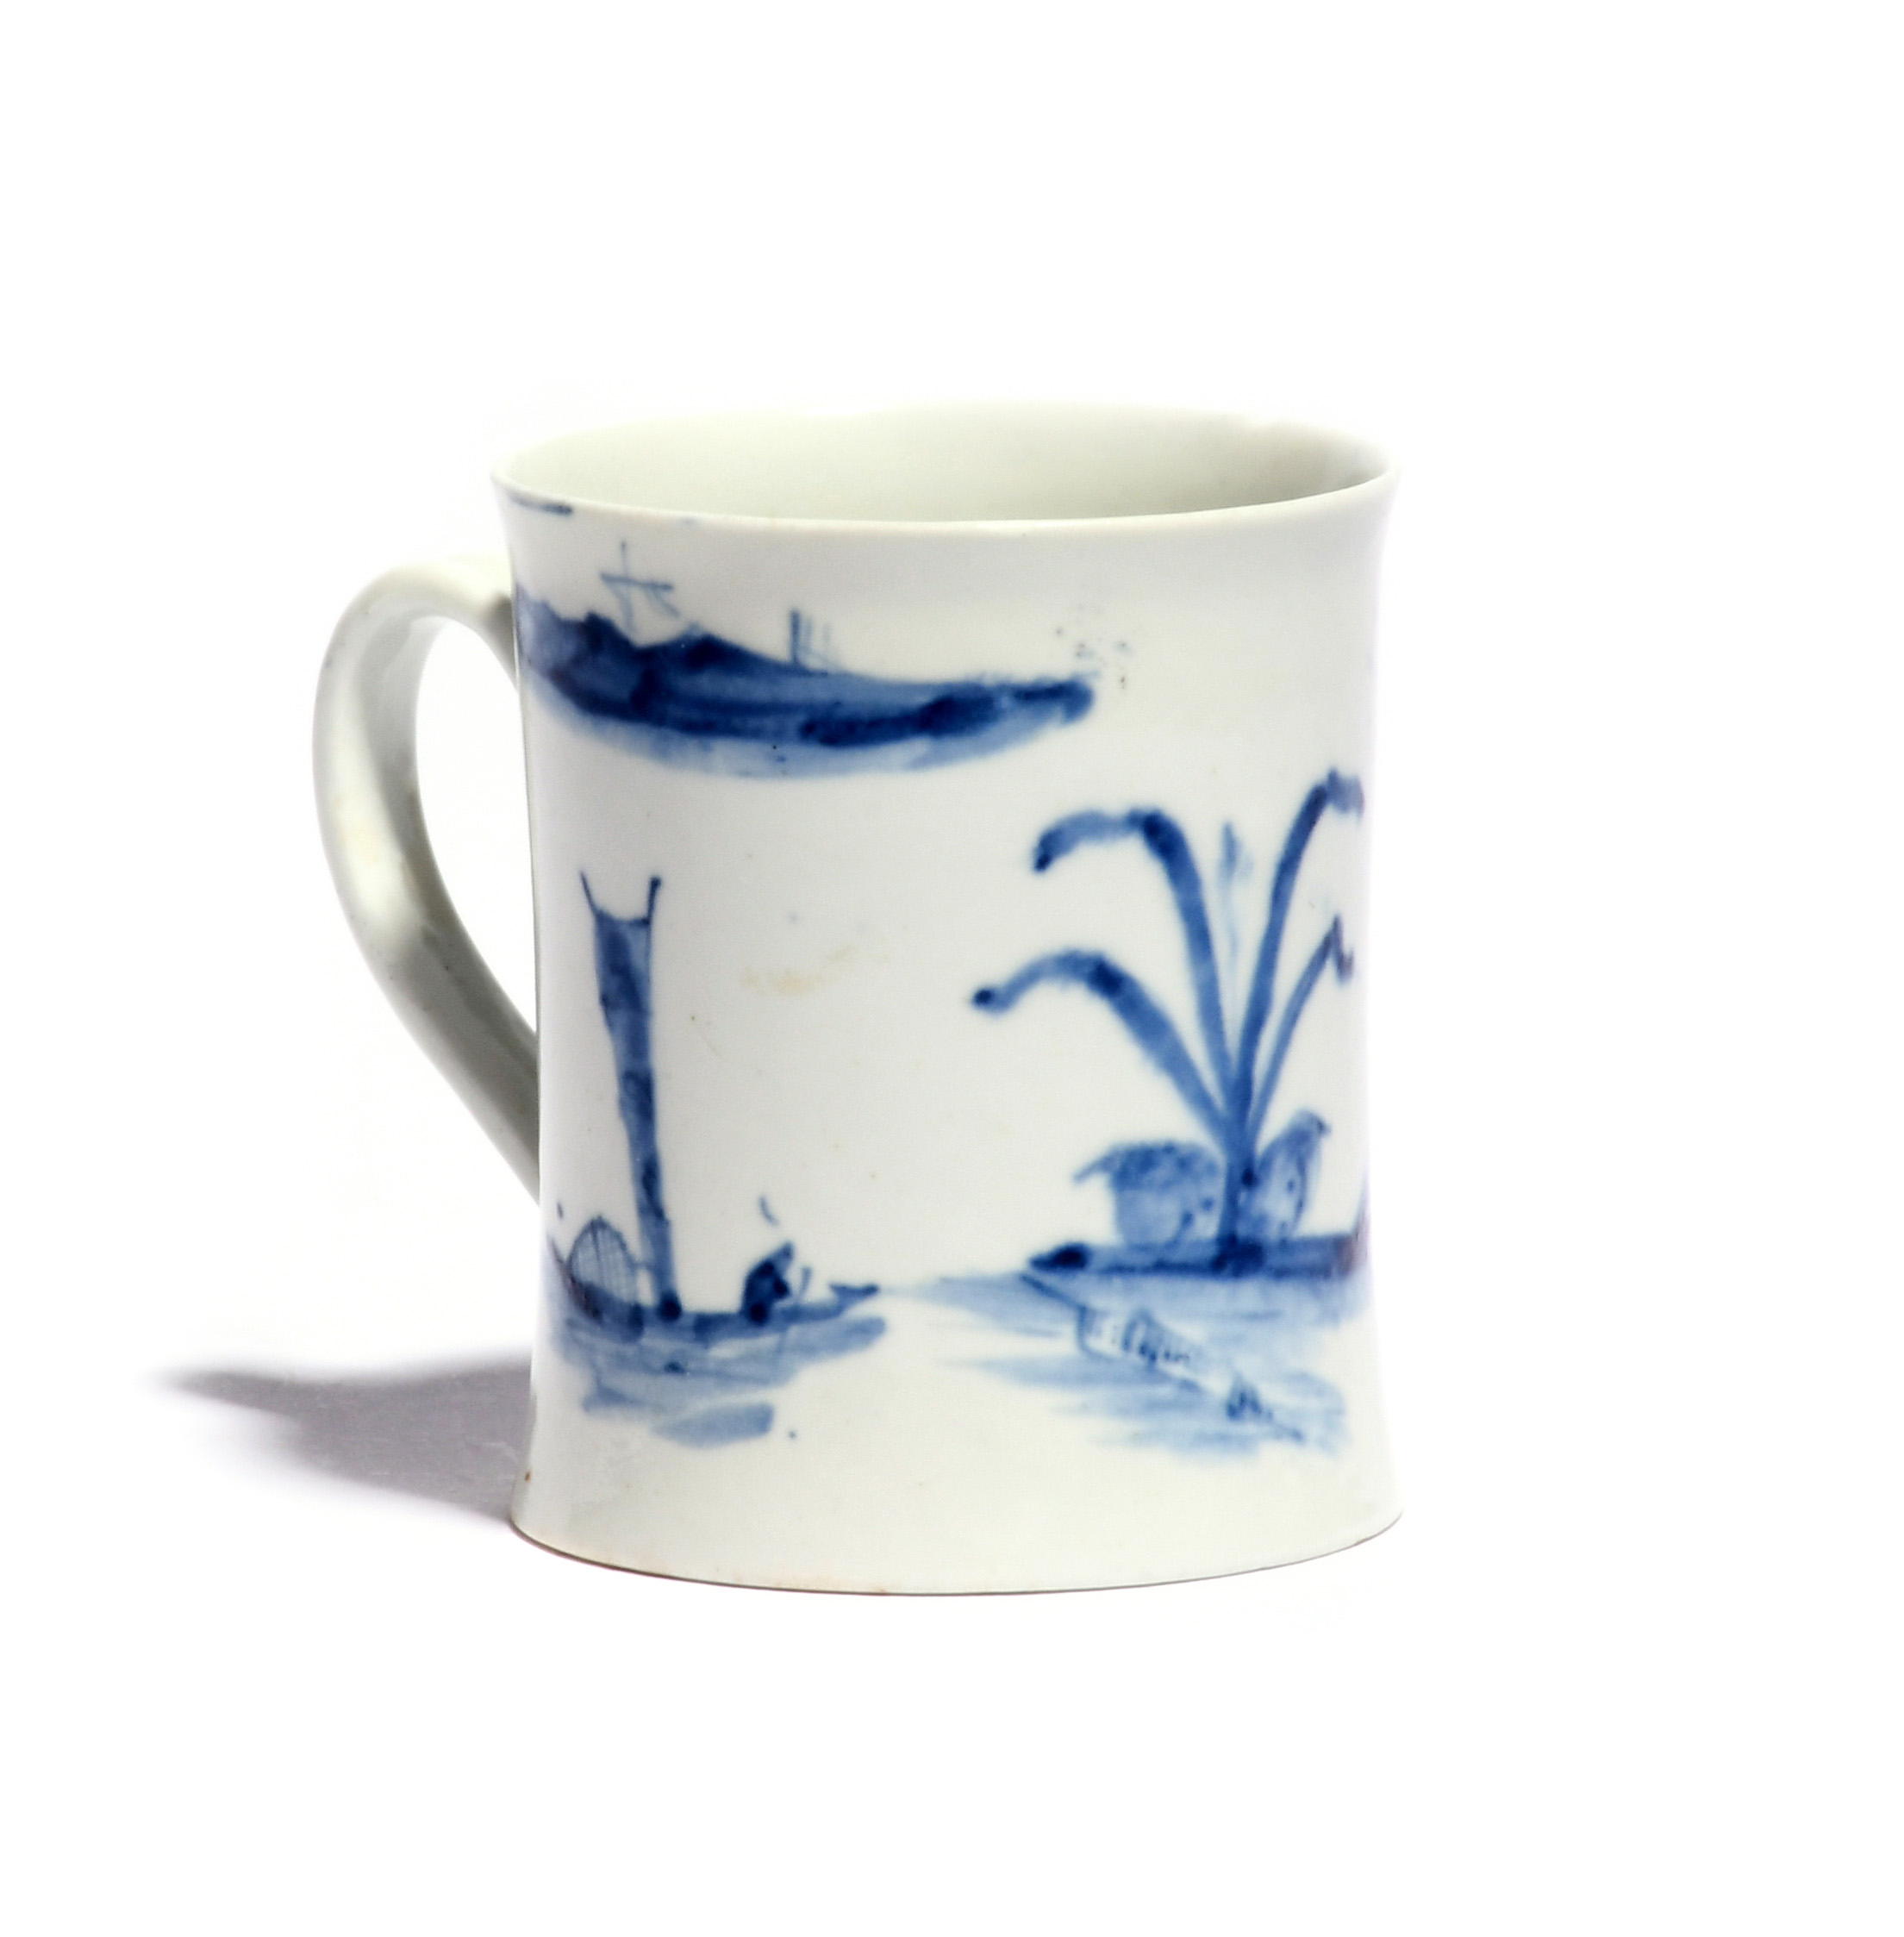 An early Worcester blue and white small mug c.1753-54, the slightly waisted form painted with the